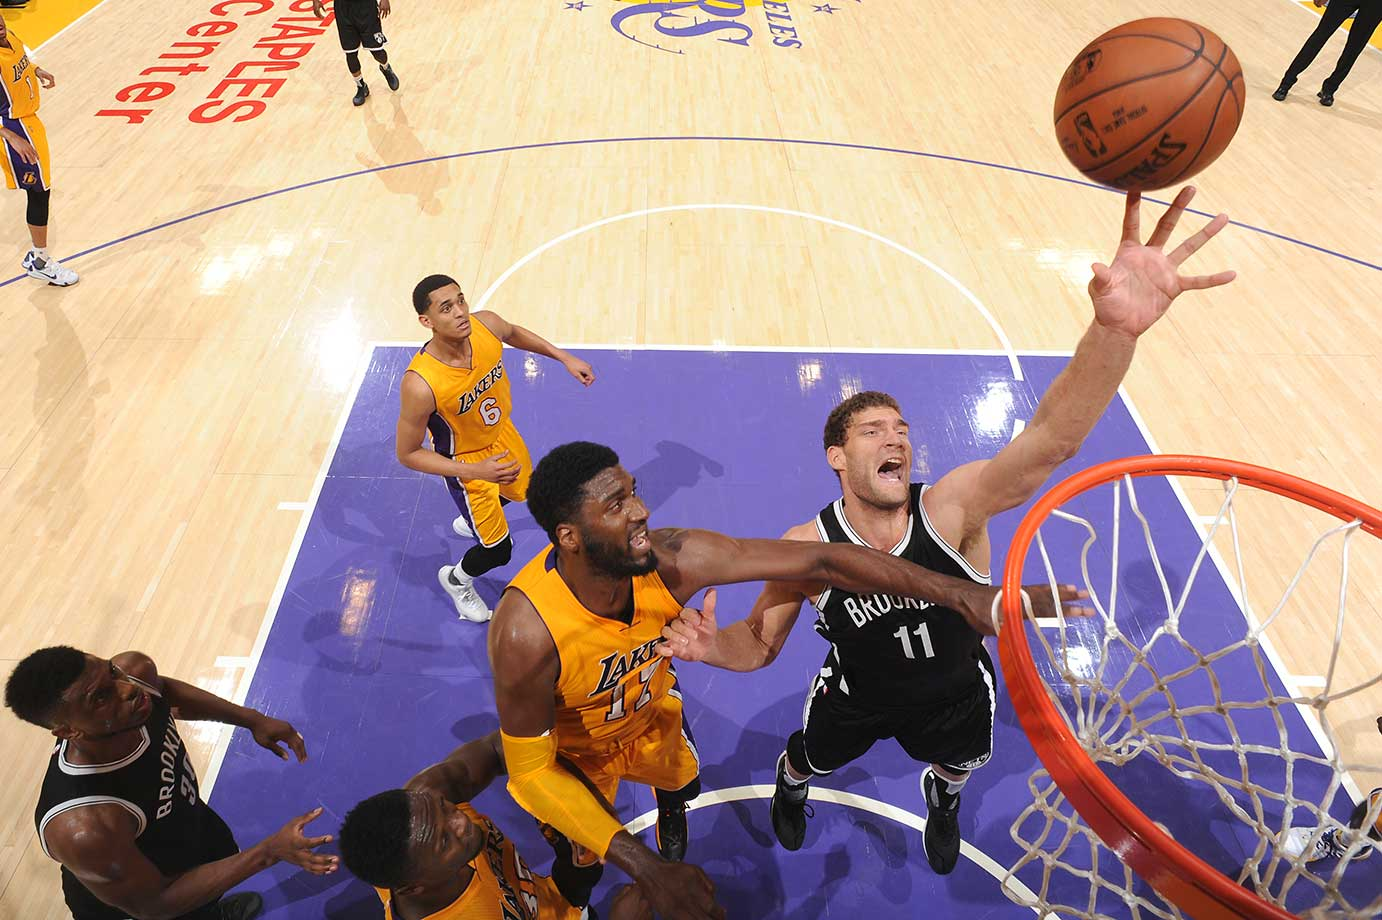 Brook Lopez put back a layup with 0.4 seconds left in overtime to give Brooklyn a 121-120 win over Denver.